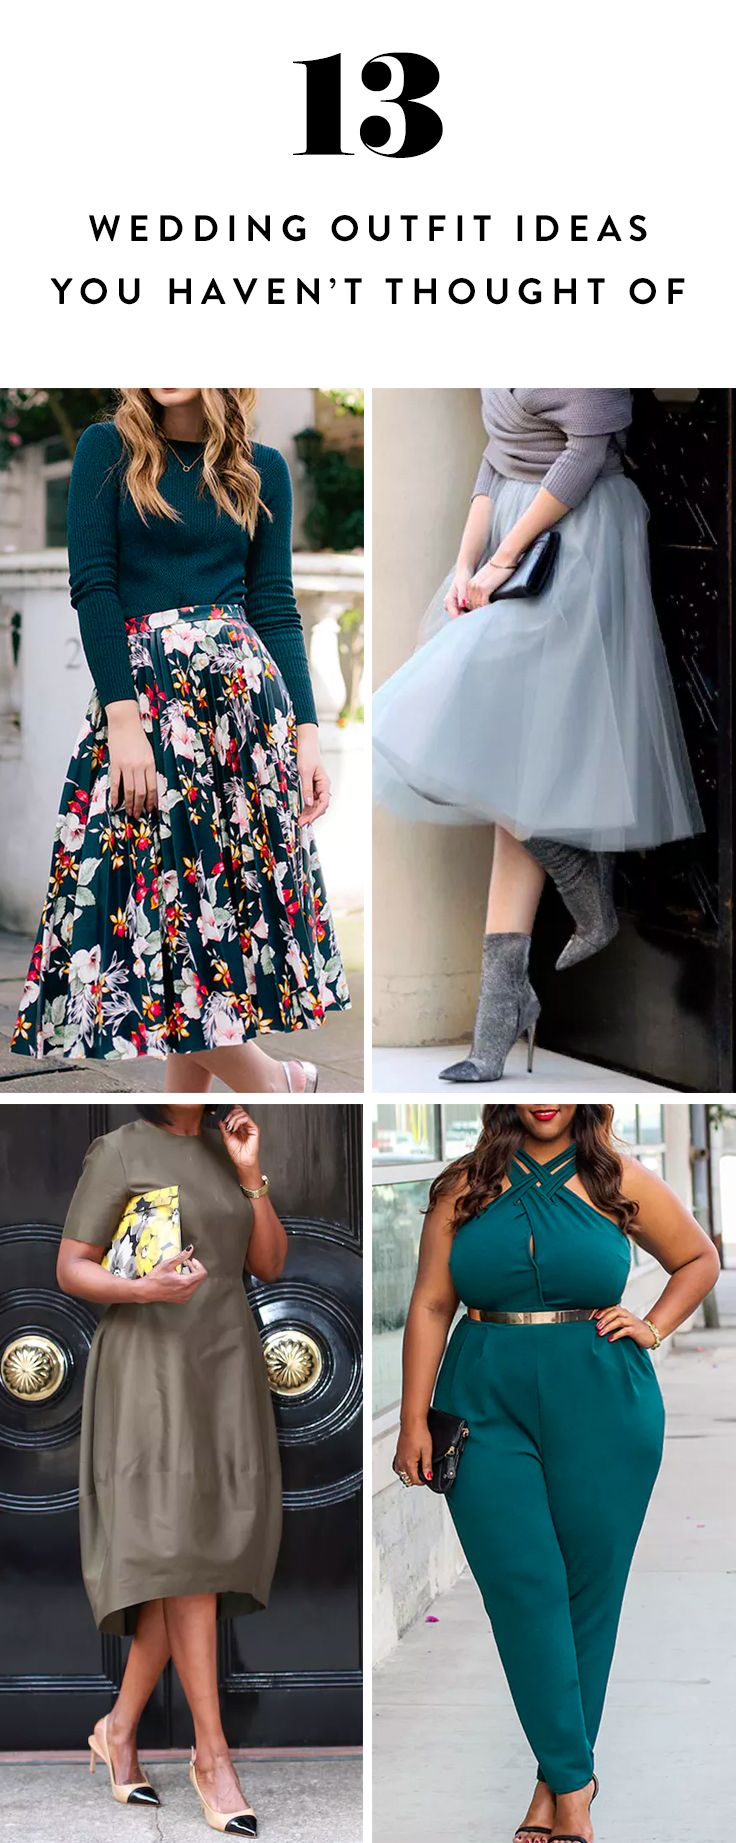 We've rounded up 13 outfit ideas that work for a wedding but aren't the same old sheath dress. Get the looks here.